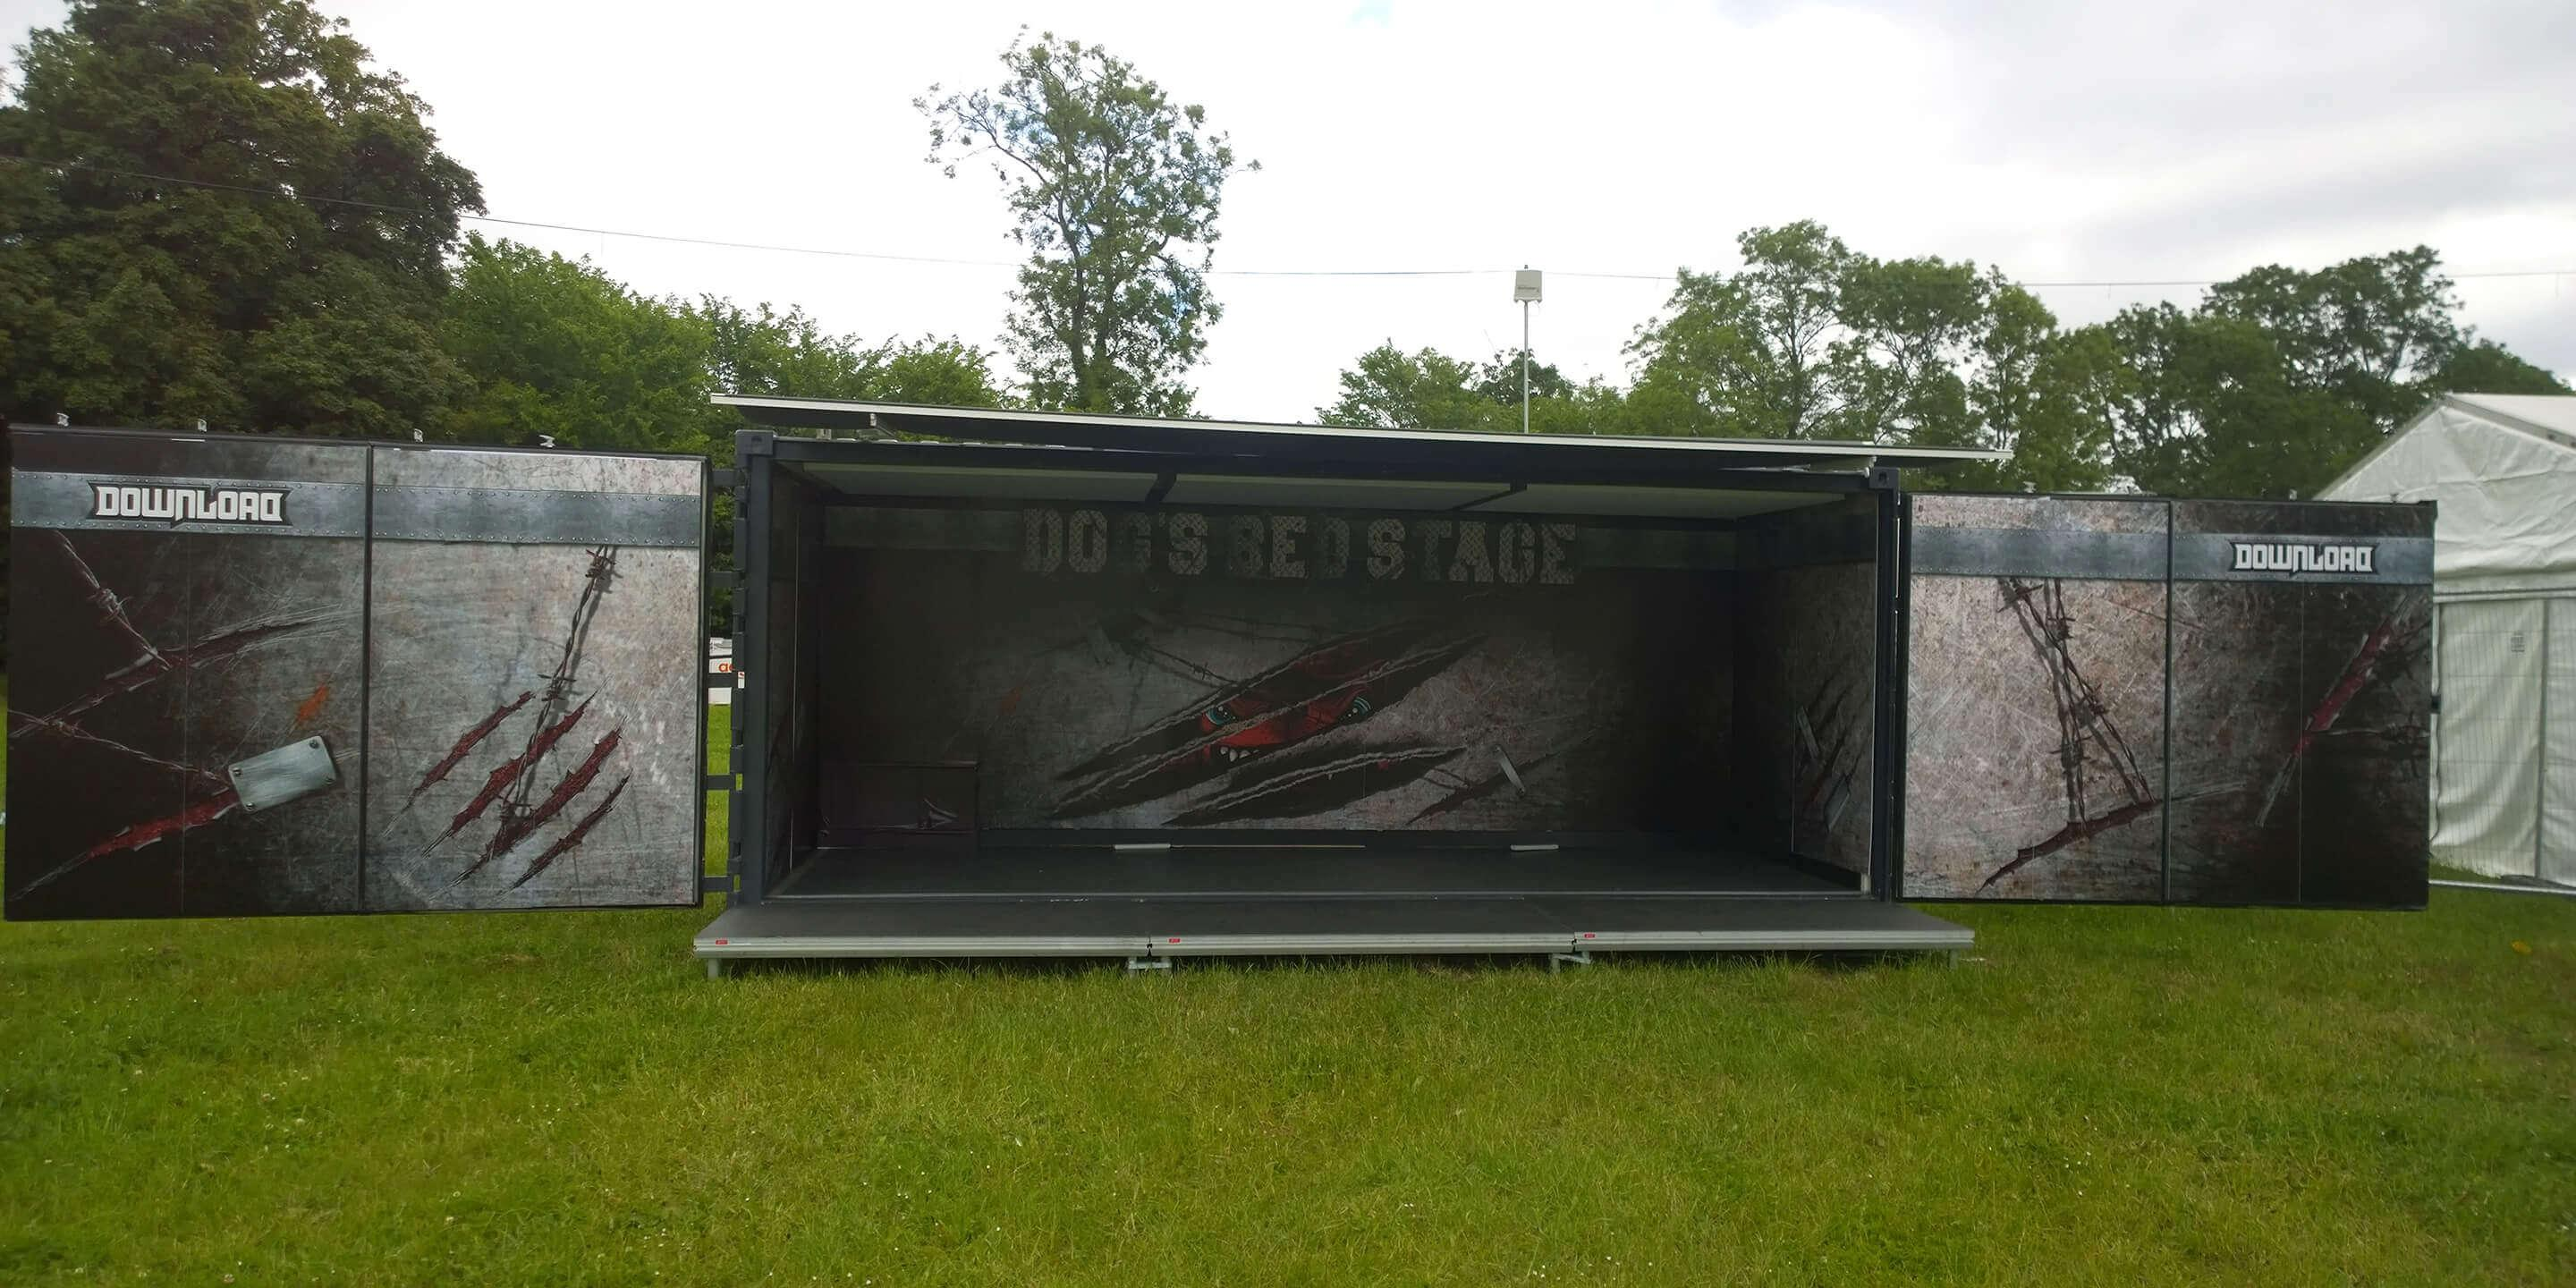 Event Shipping Containers: Studio Premium Event Container for Download Festival Activation